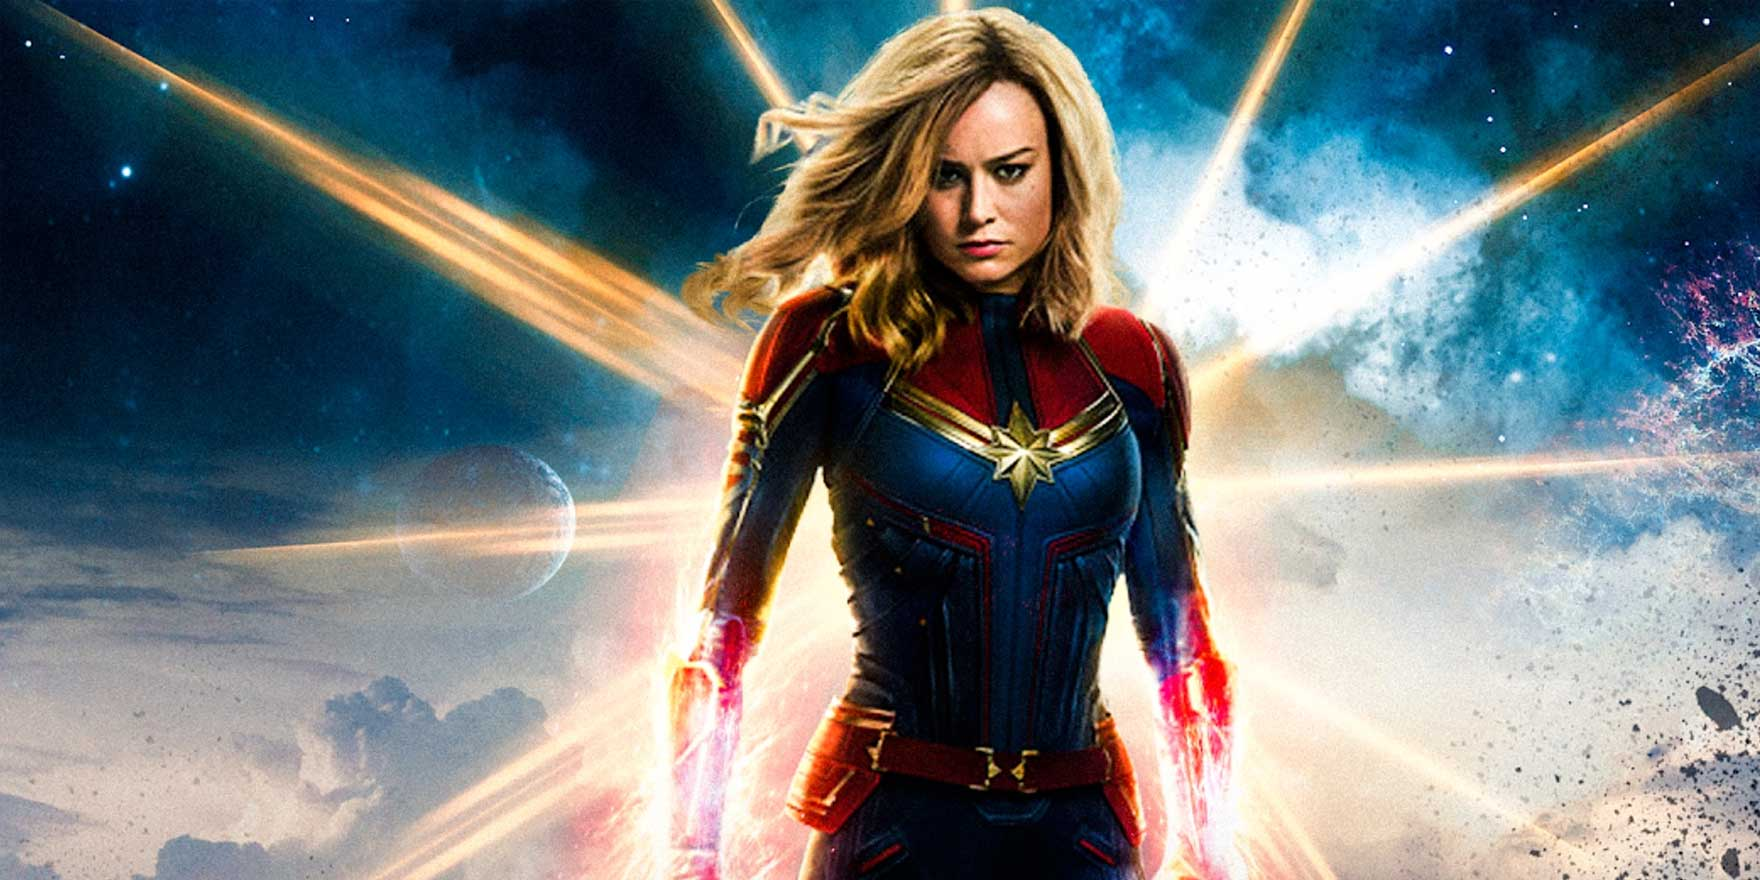 Captain Marvel - Header Image